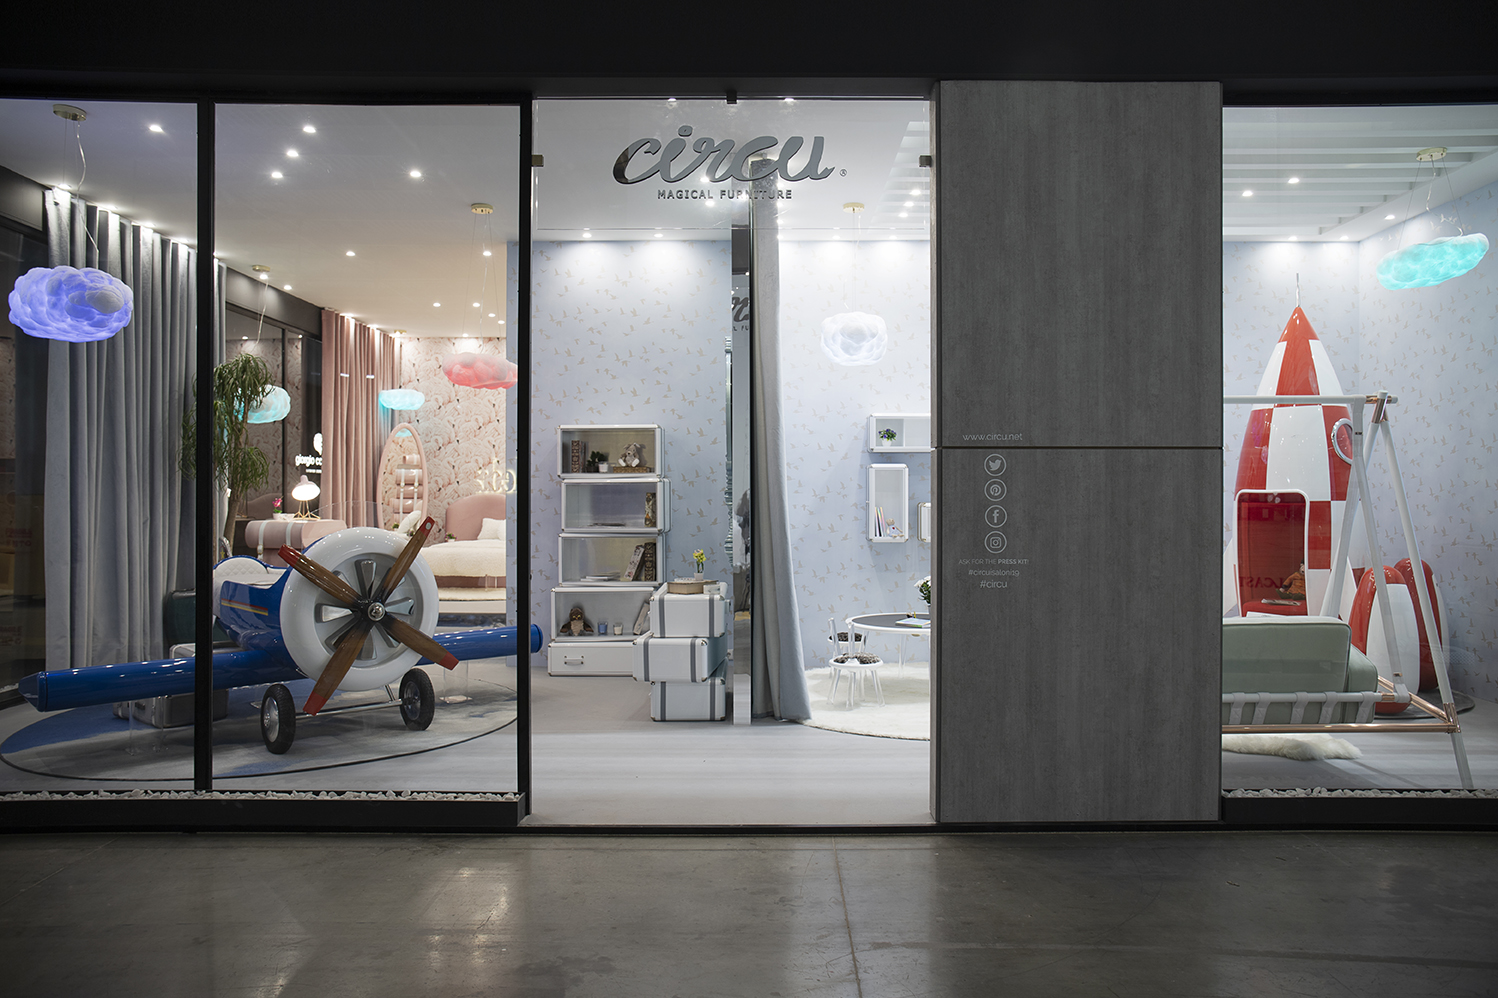 circu at Salone del Mobile 2019 salone del mobile 2019 SALONE DEL MOBILE 2019: EVERYTHING THAT YOU ARE MISSING IMG 0665